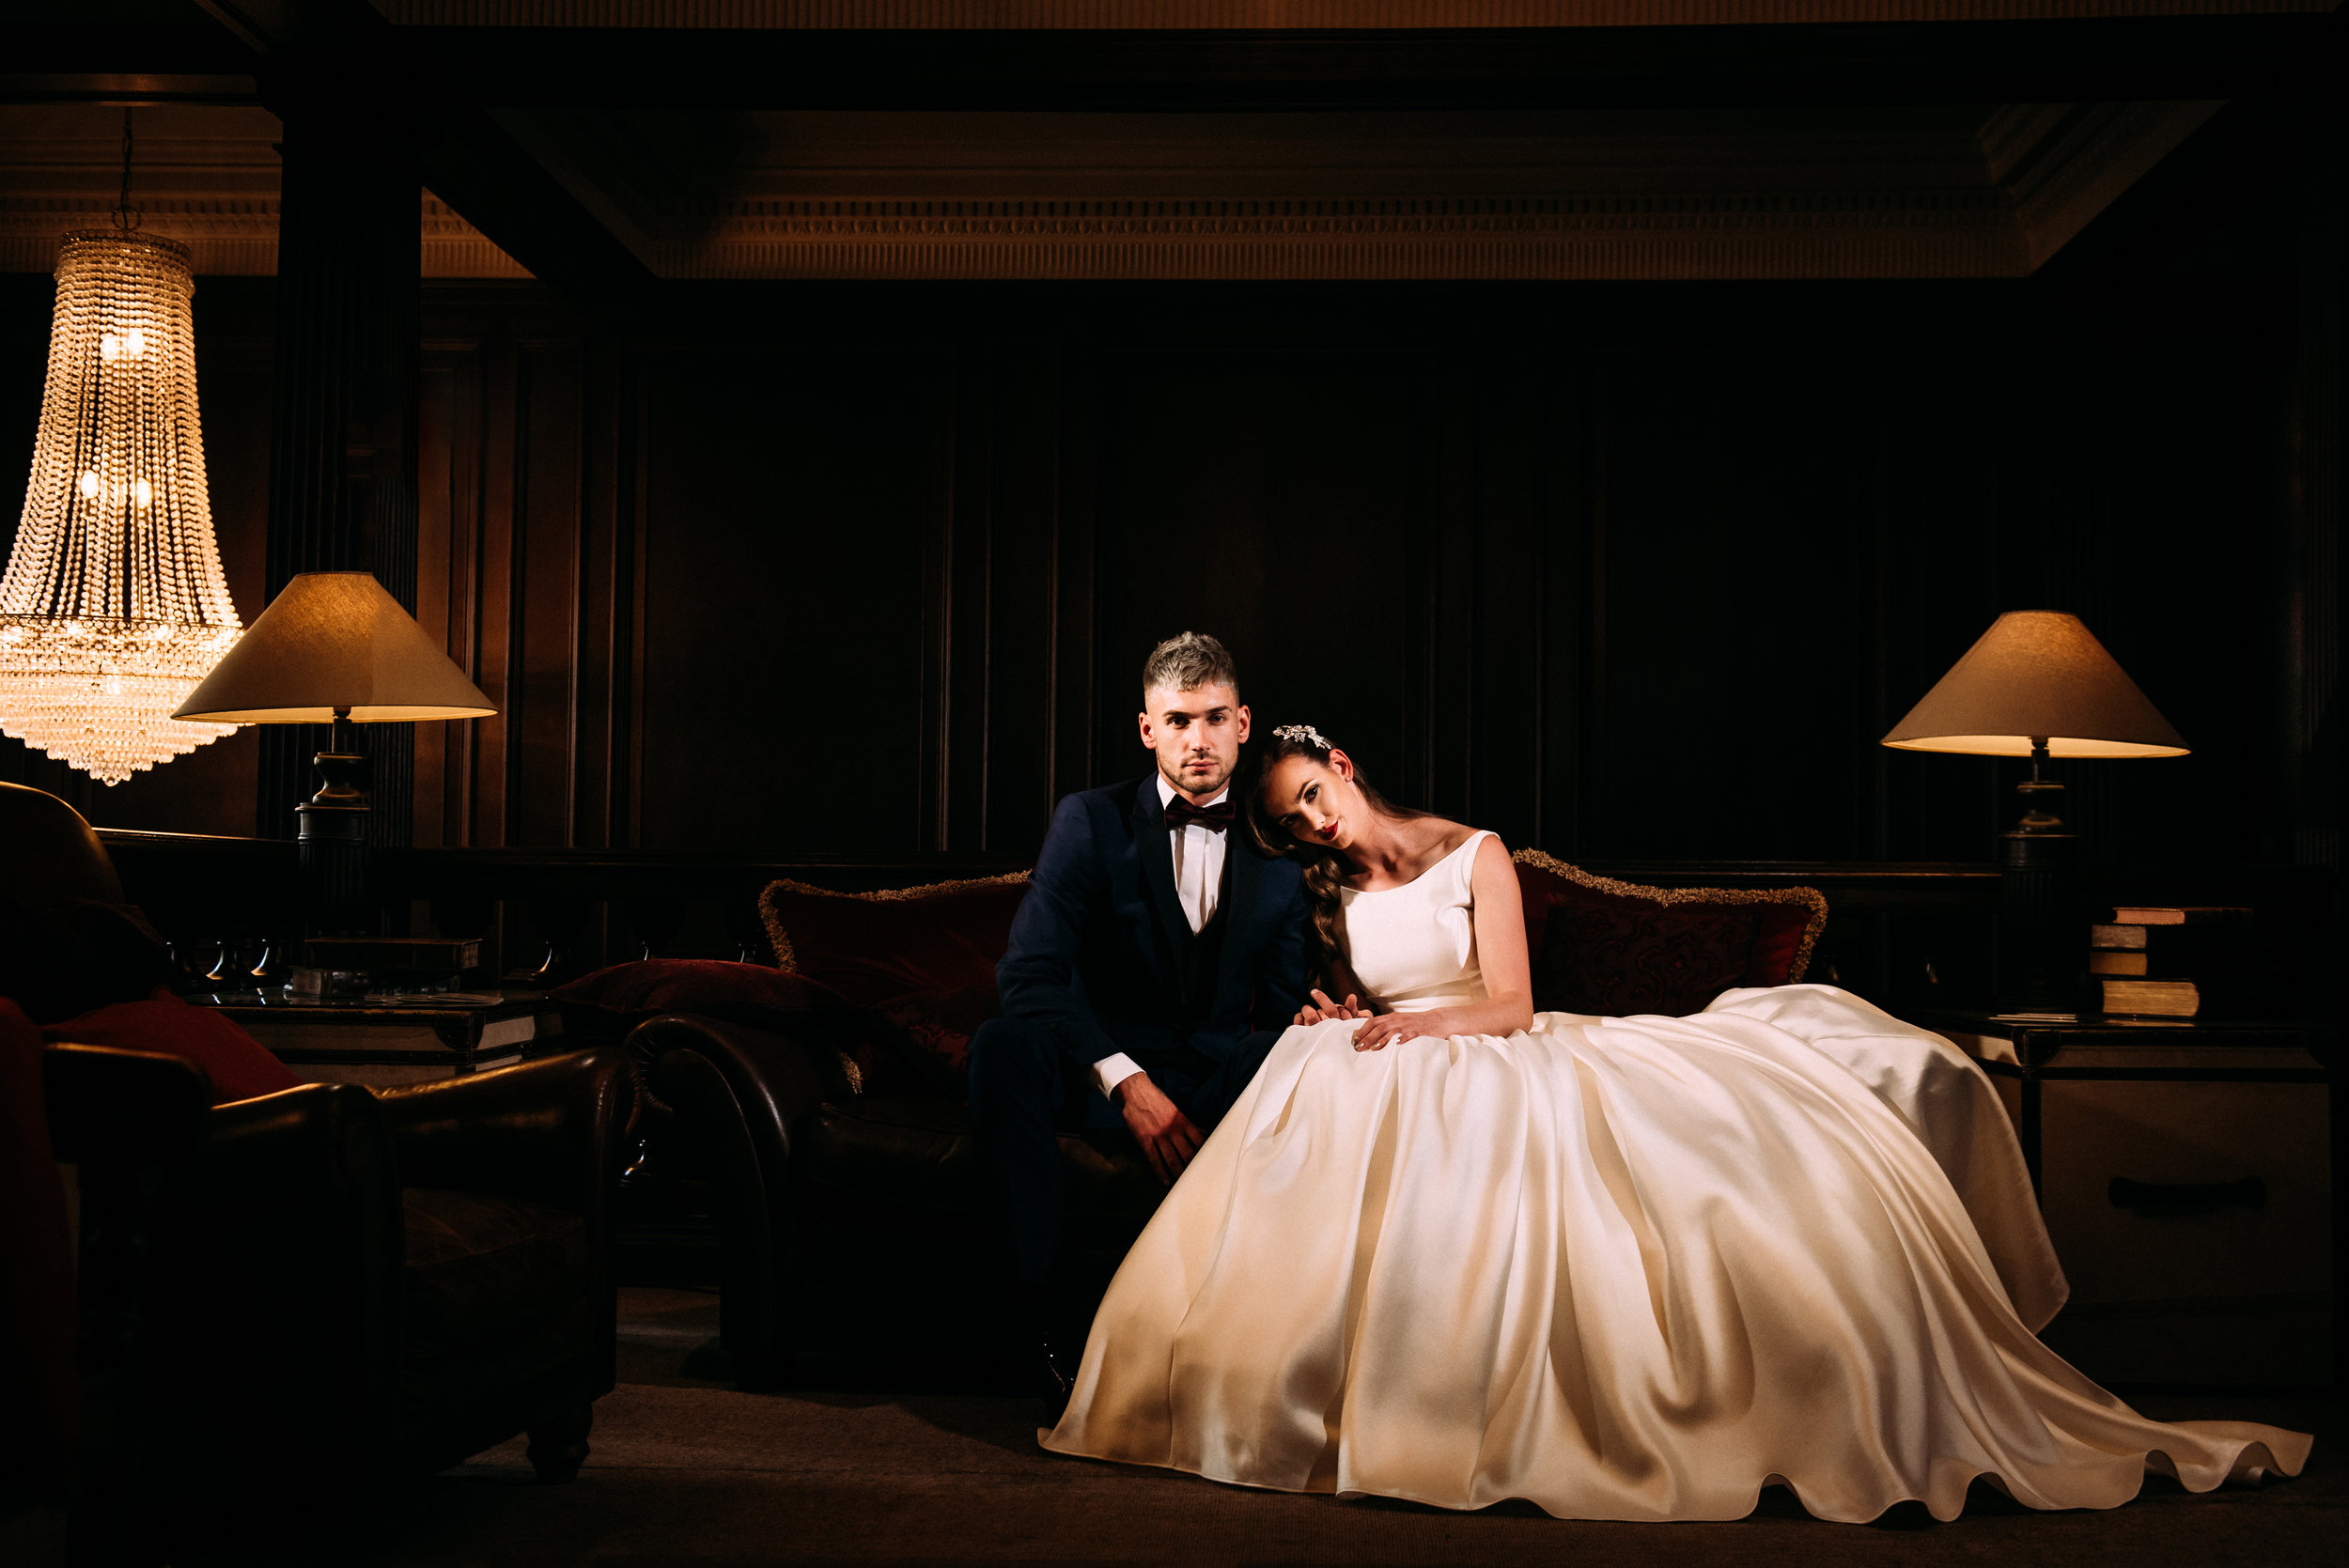 The Bridal Lounge Accrington - We are never less than delighted to have The Bridal Lounge join us. After enchanting brides since 2011 with dreamy dresses, they could have just the dress for your special day.